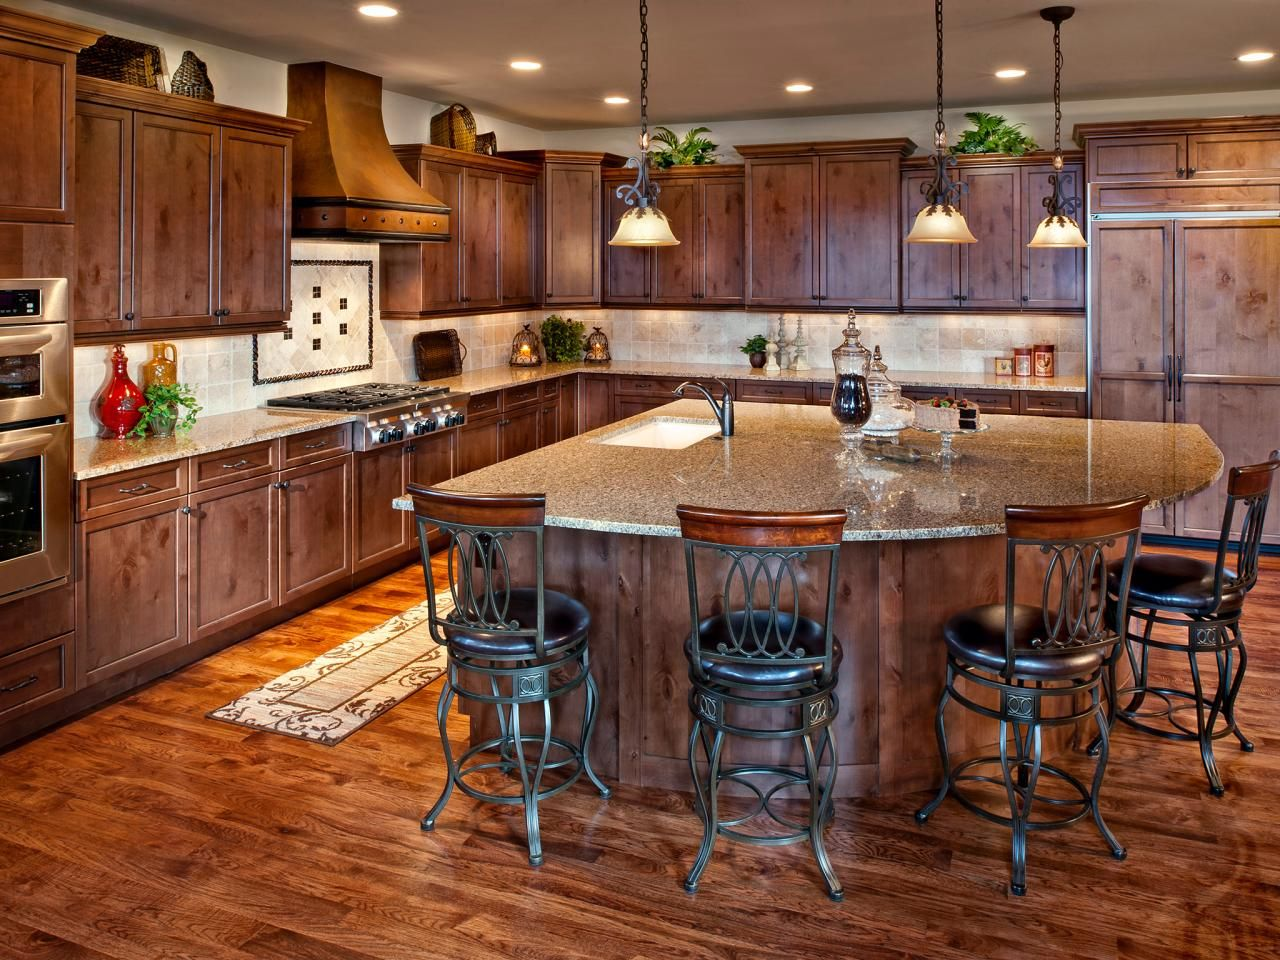 Kitchen Islands Ideas Utility Knife Beautiful Pictures Of Hgtv 39s Favorite